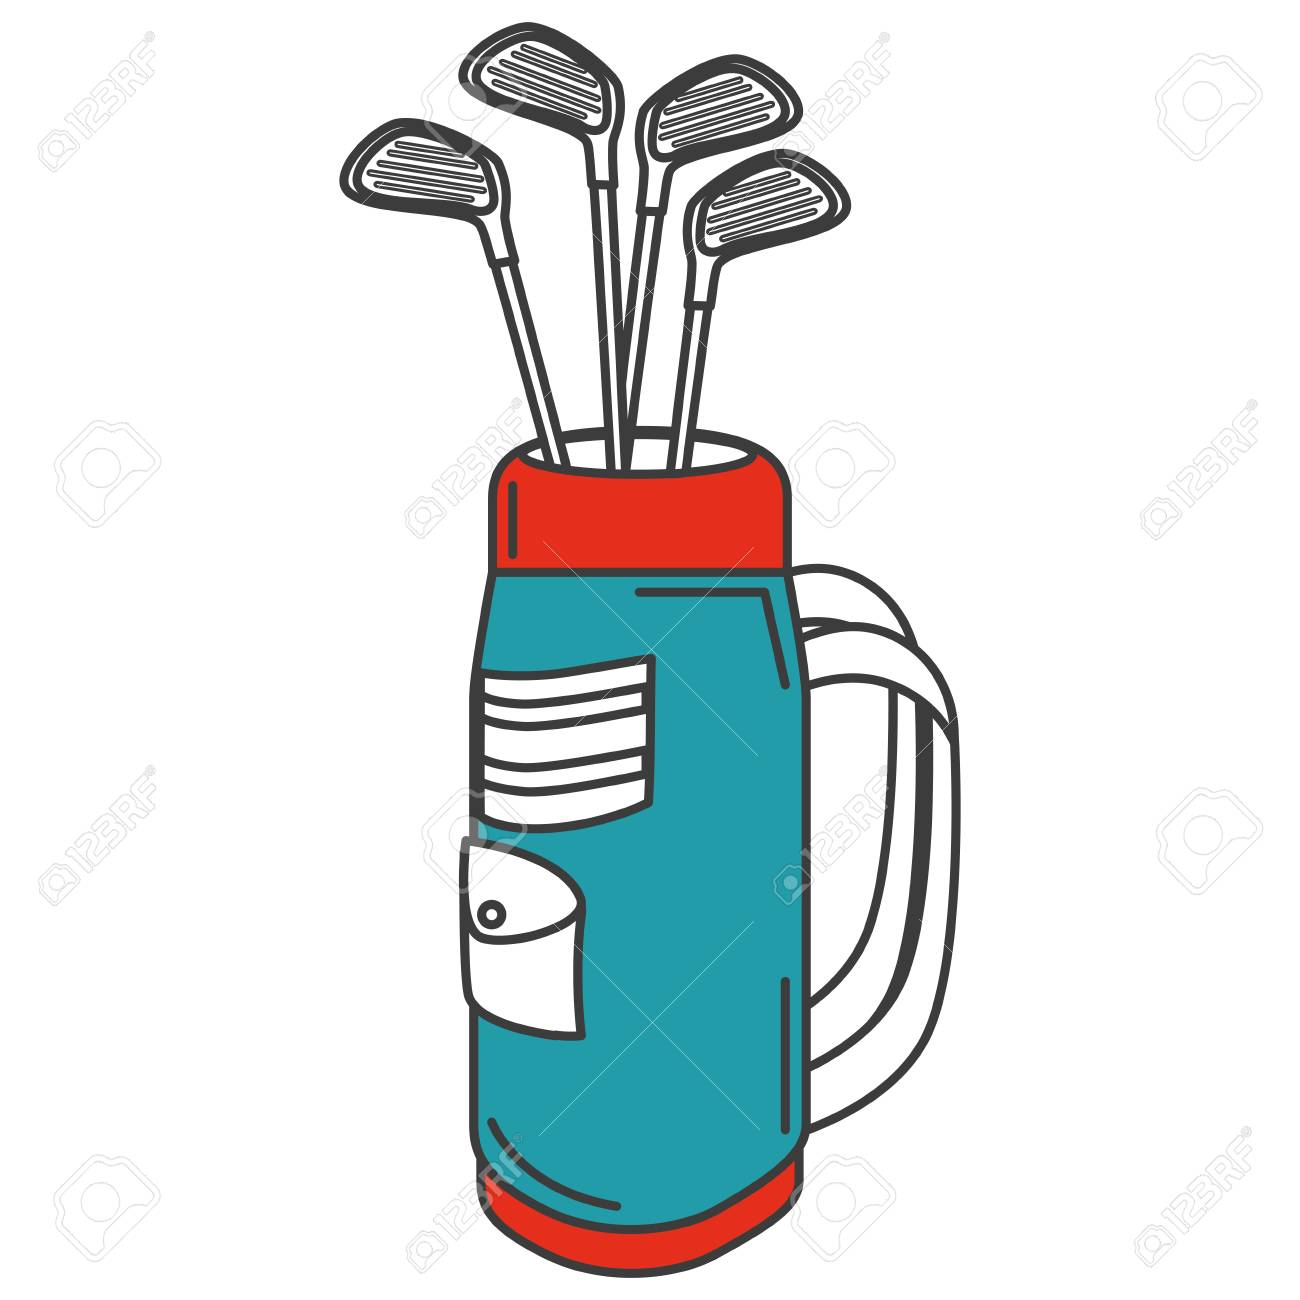 golf bag with clubs vector illustration design.